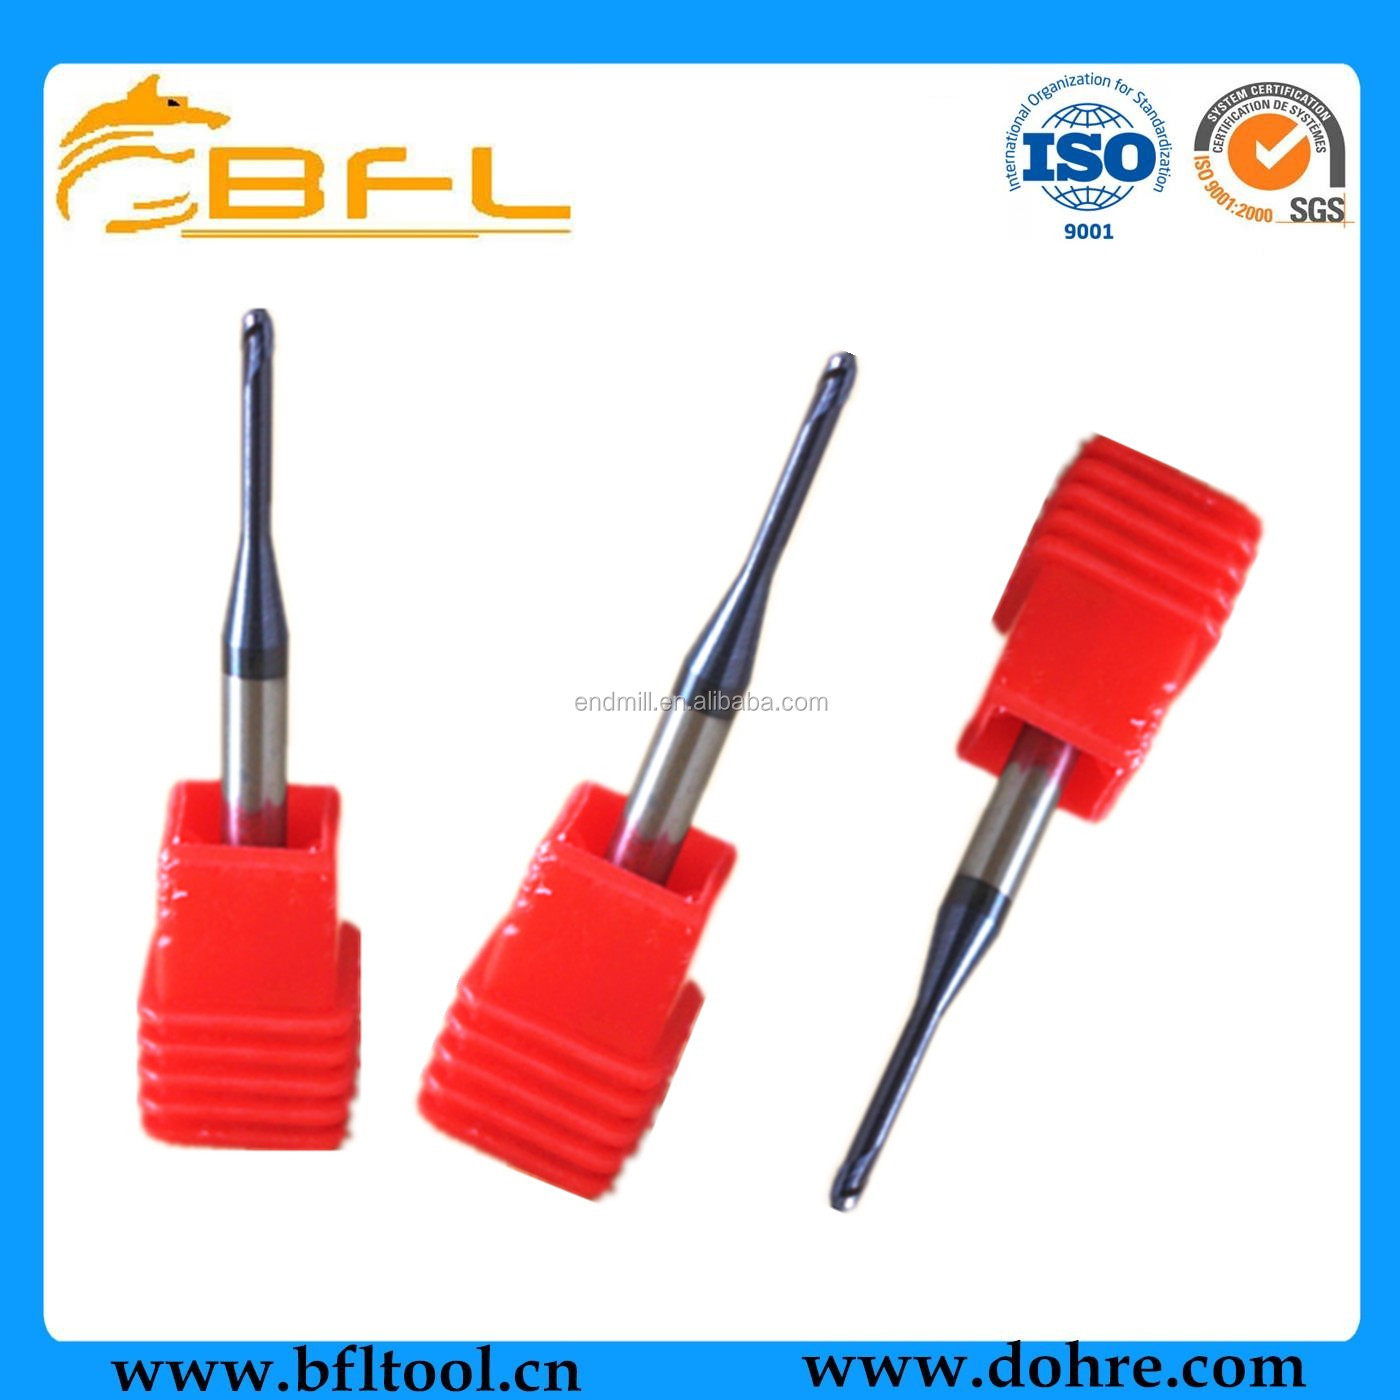 Micro Diameter Coated Ball Nose End Mill/CNC Ball Nose Cutting Tool/Carbide Ball Nose End Milling Cutter